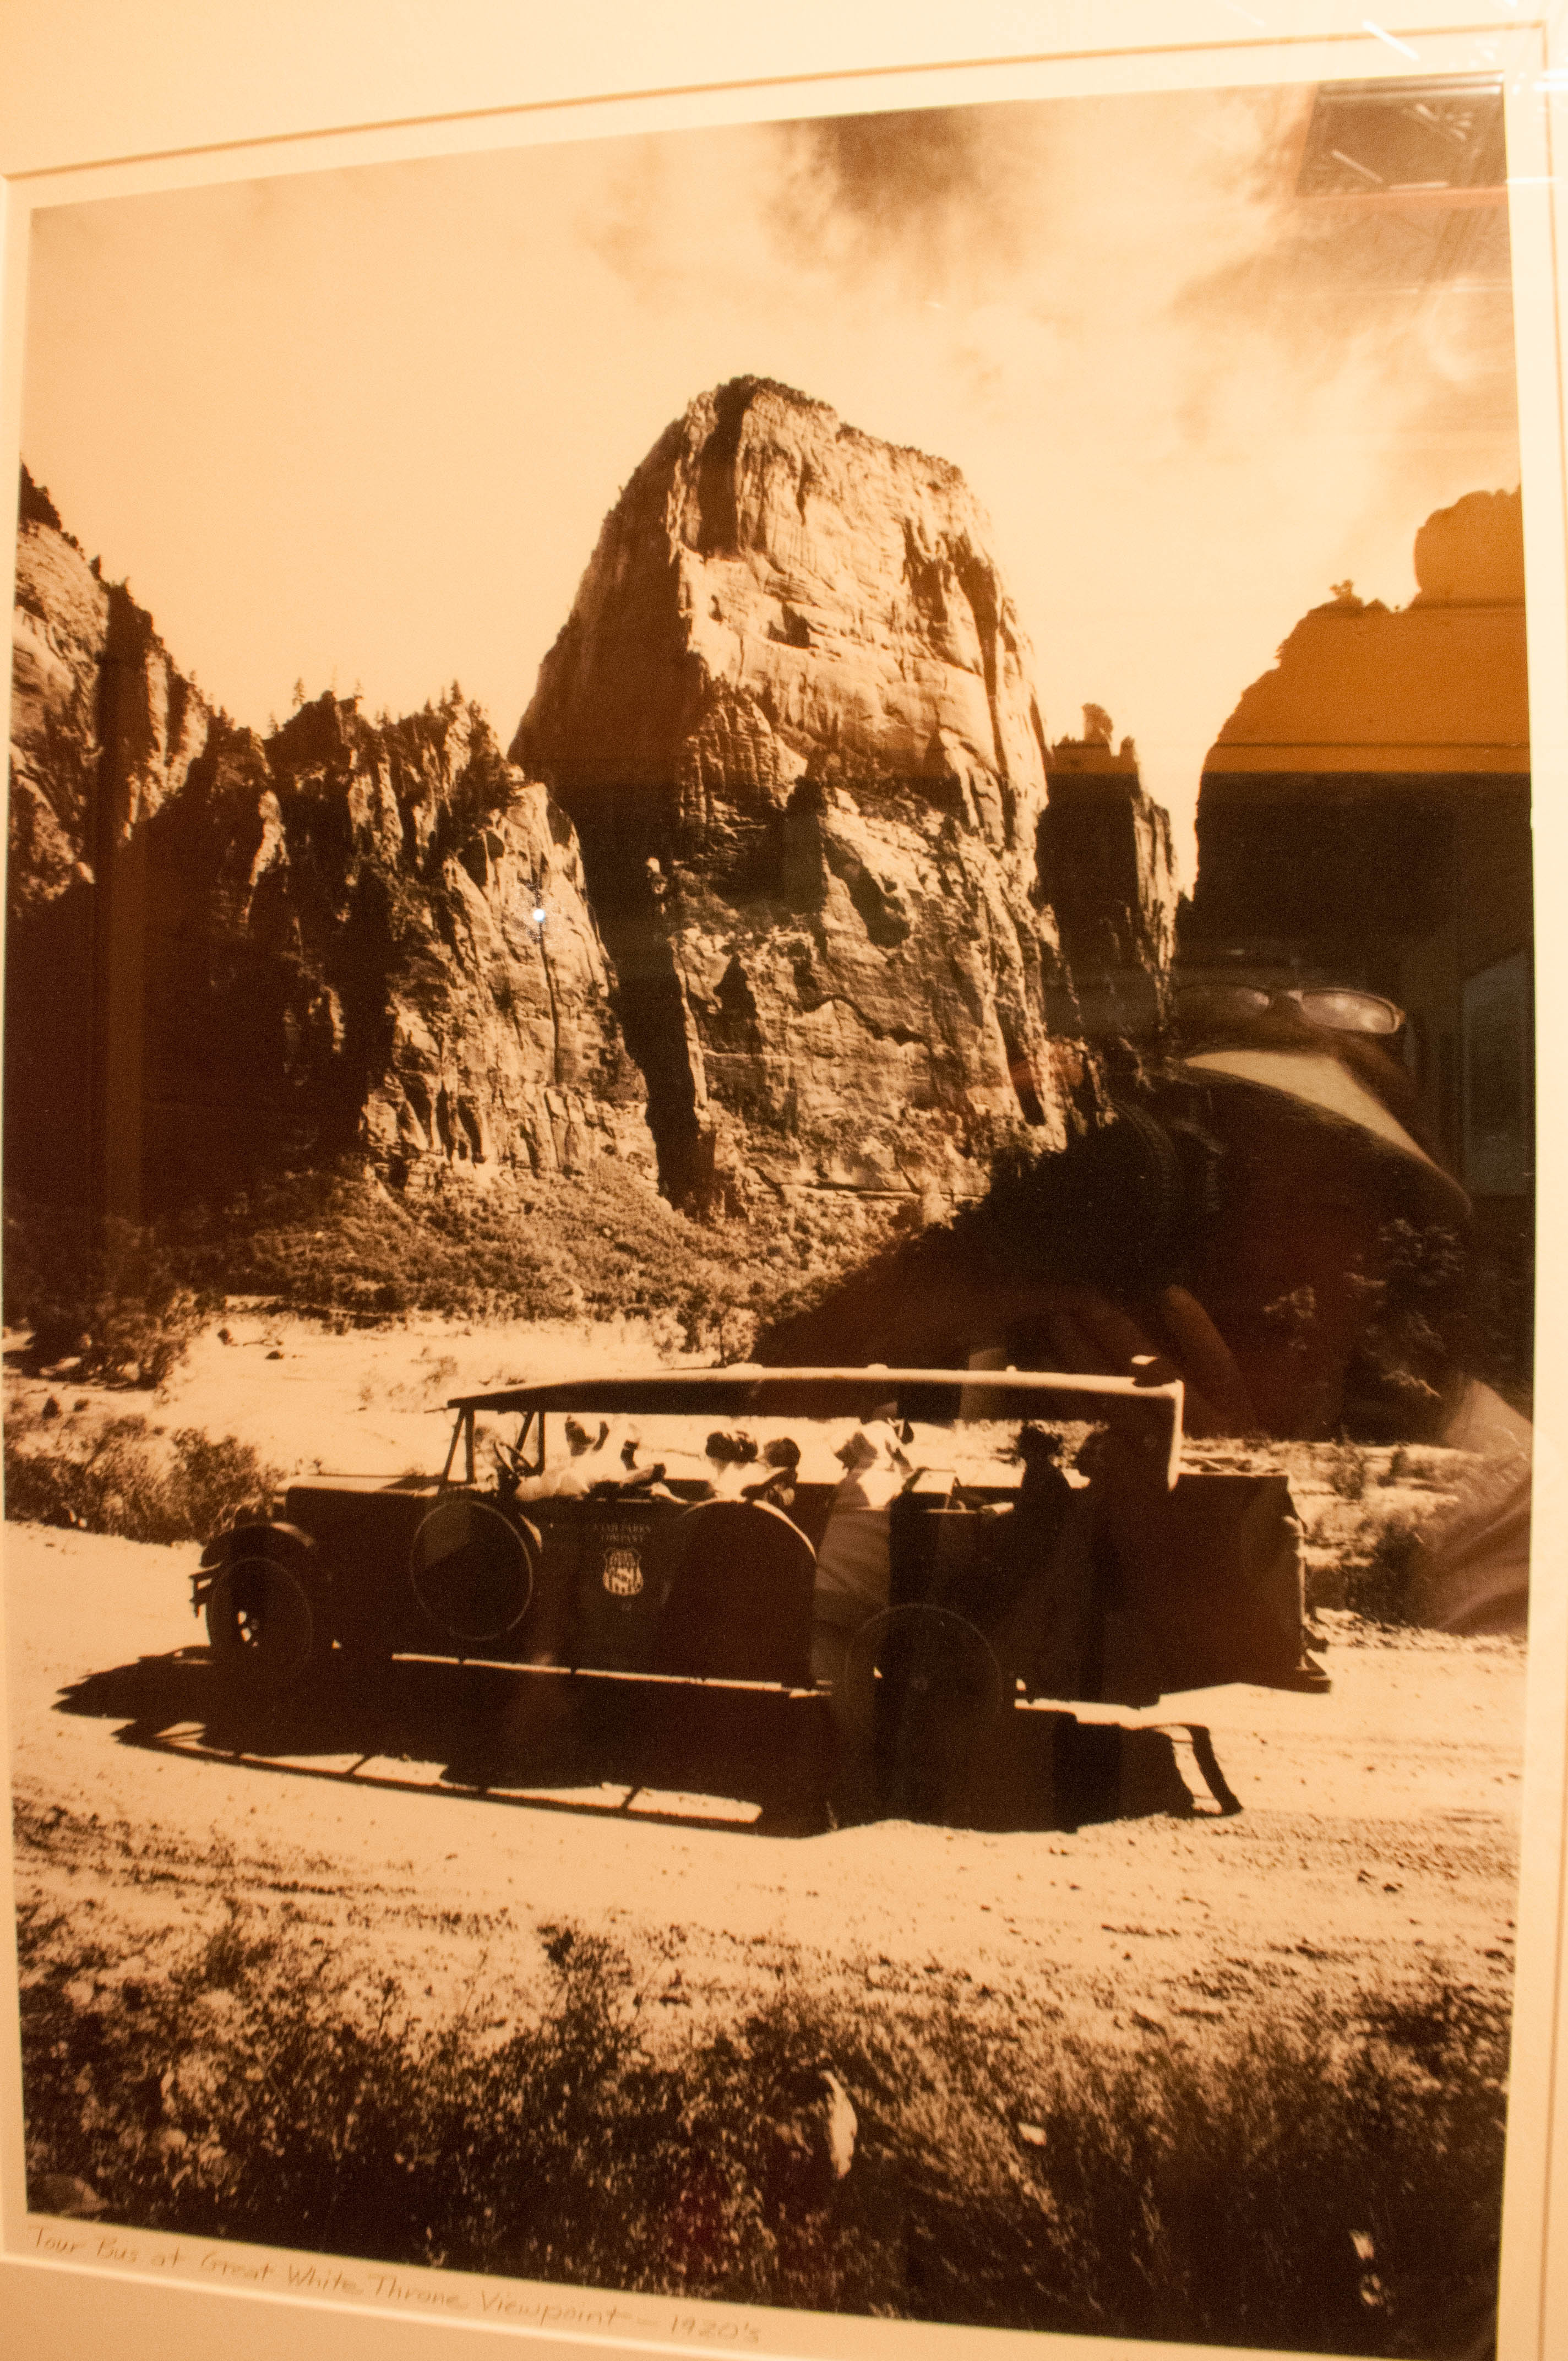 Sightseeing tourist shuttle during the early 1920s, Frontier Homestead State Park Museum, Cedar City, Utah, August 2016 | Photo courtesy of Frontier Homestead State Park Museum, St. George News